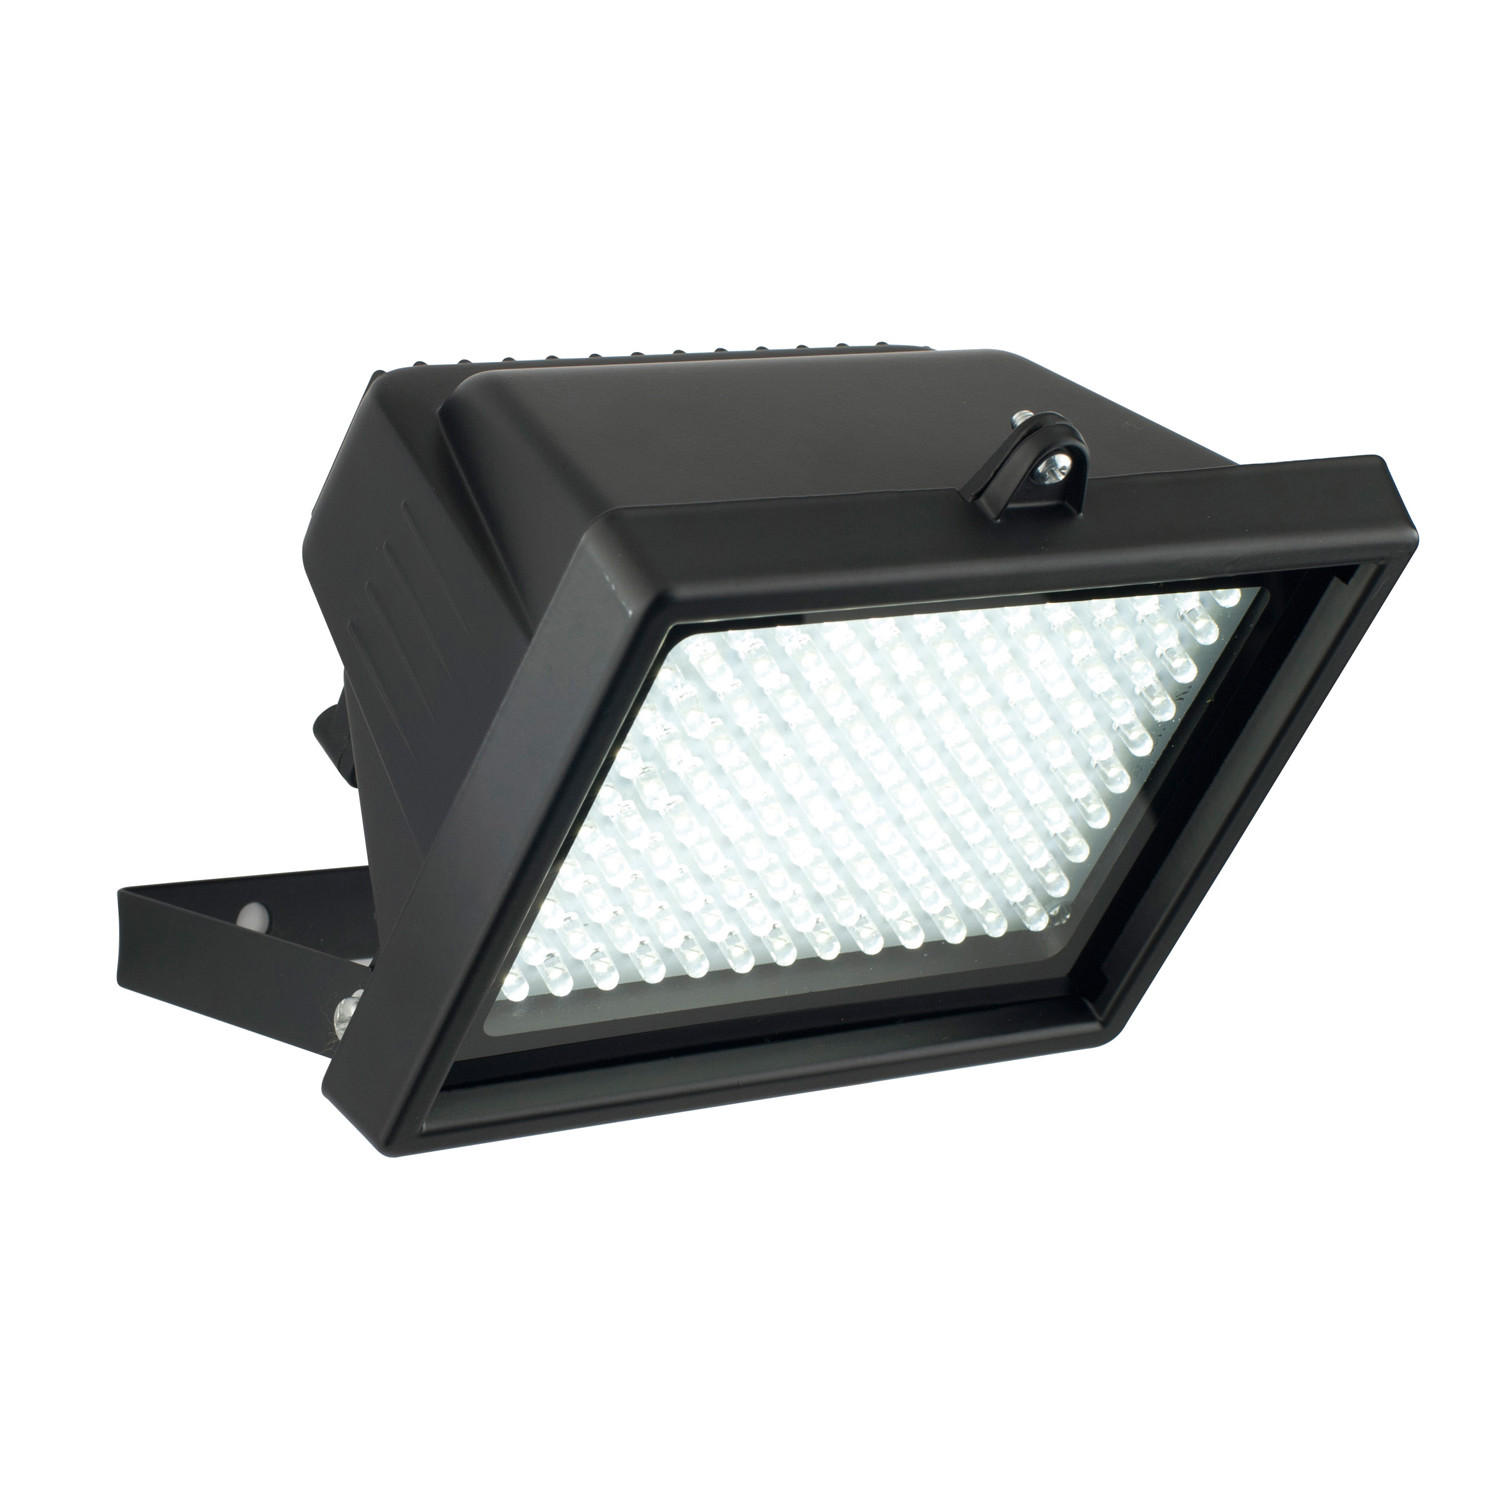 Best ideas about Led Outdoor Flood Lights . Save or Pin Led Outdoor Flood Lights Now.